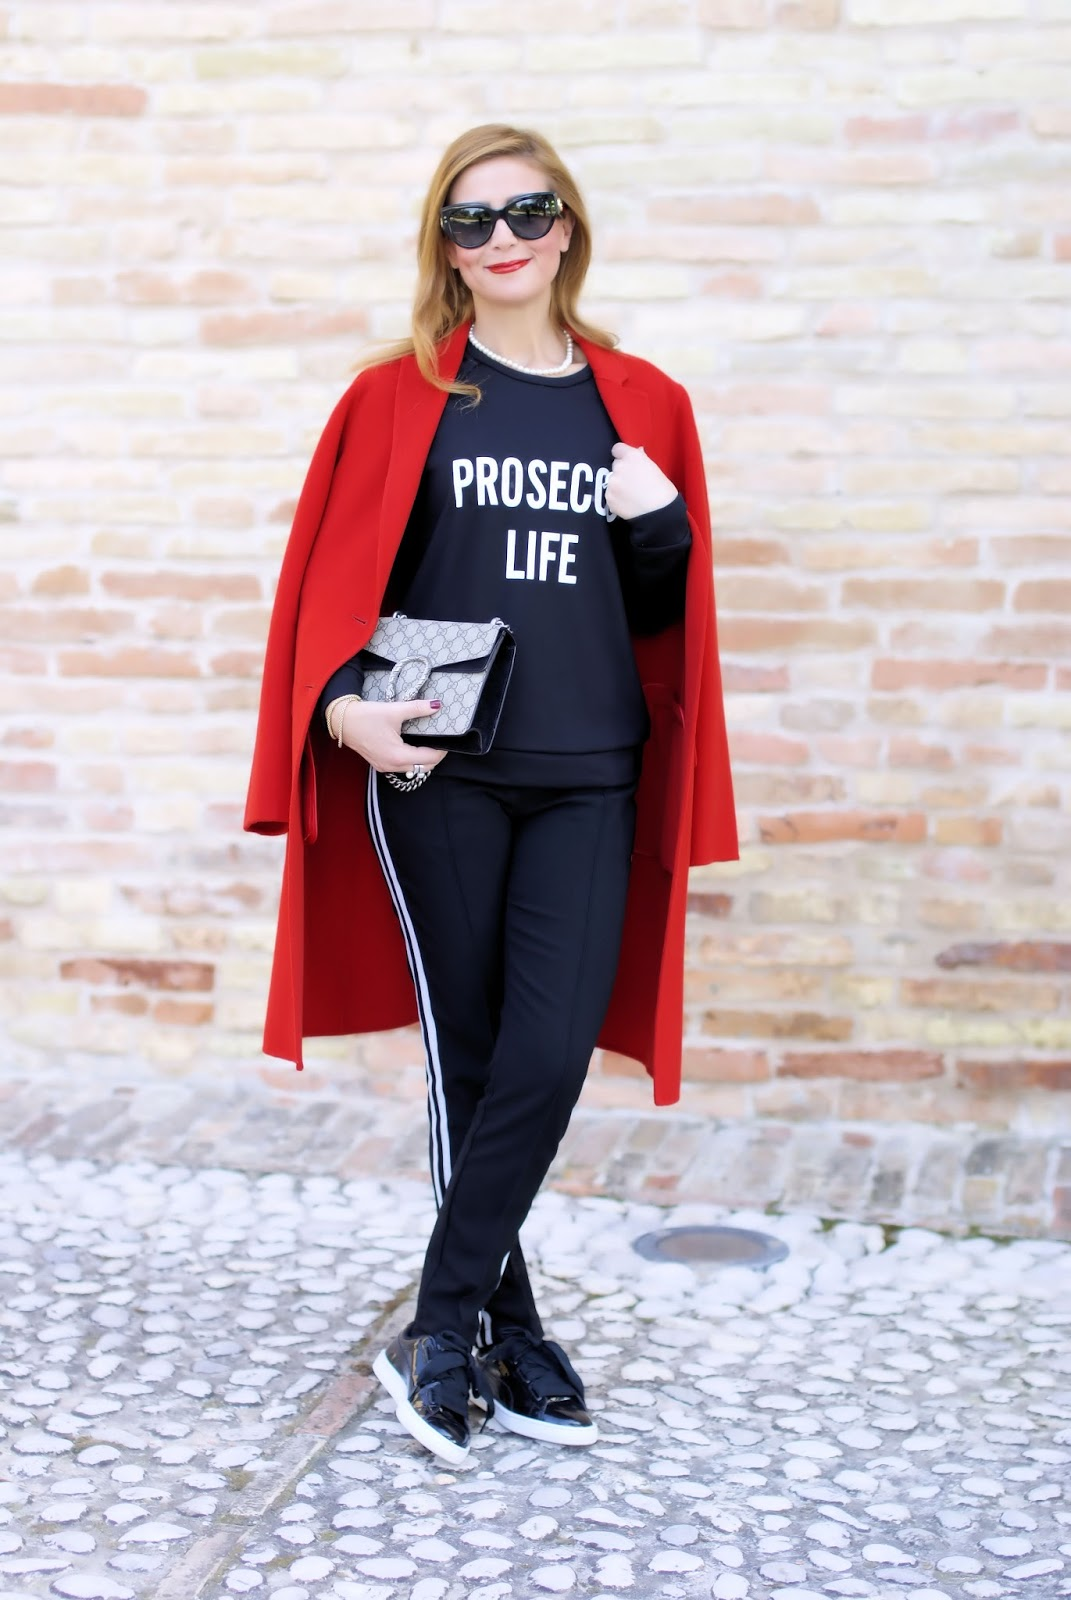 How to wear a read coat with 1.2.3 Paris and prosecco life sweatshirt on Fashion and Cookies fashion blog